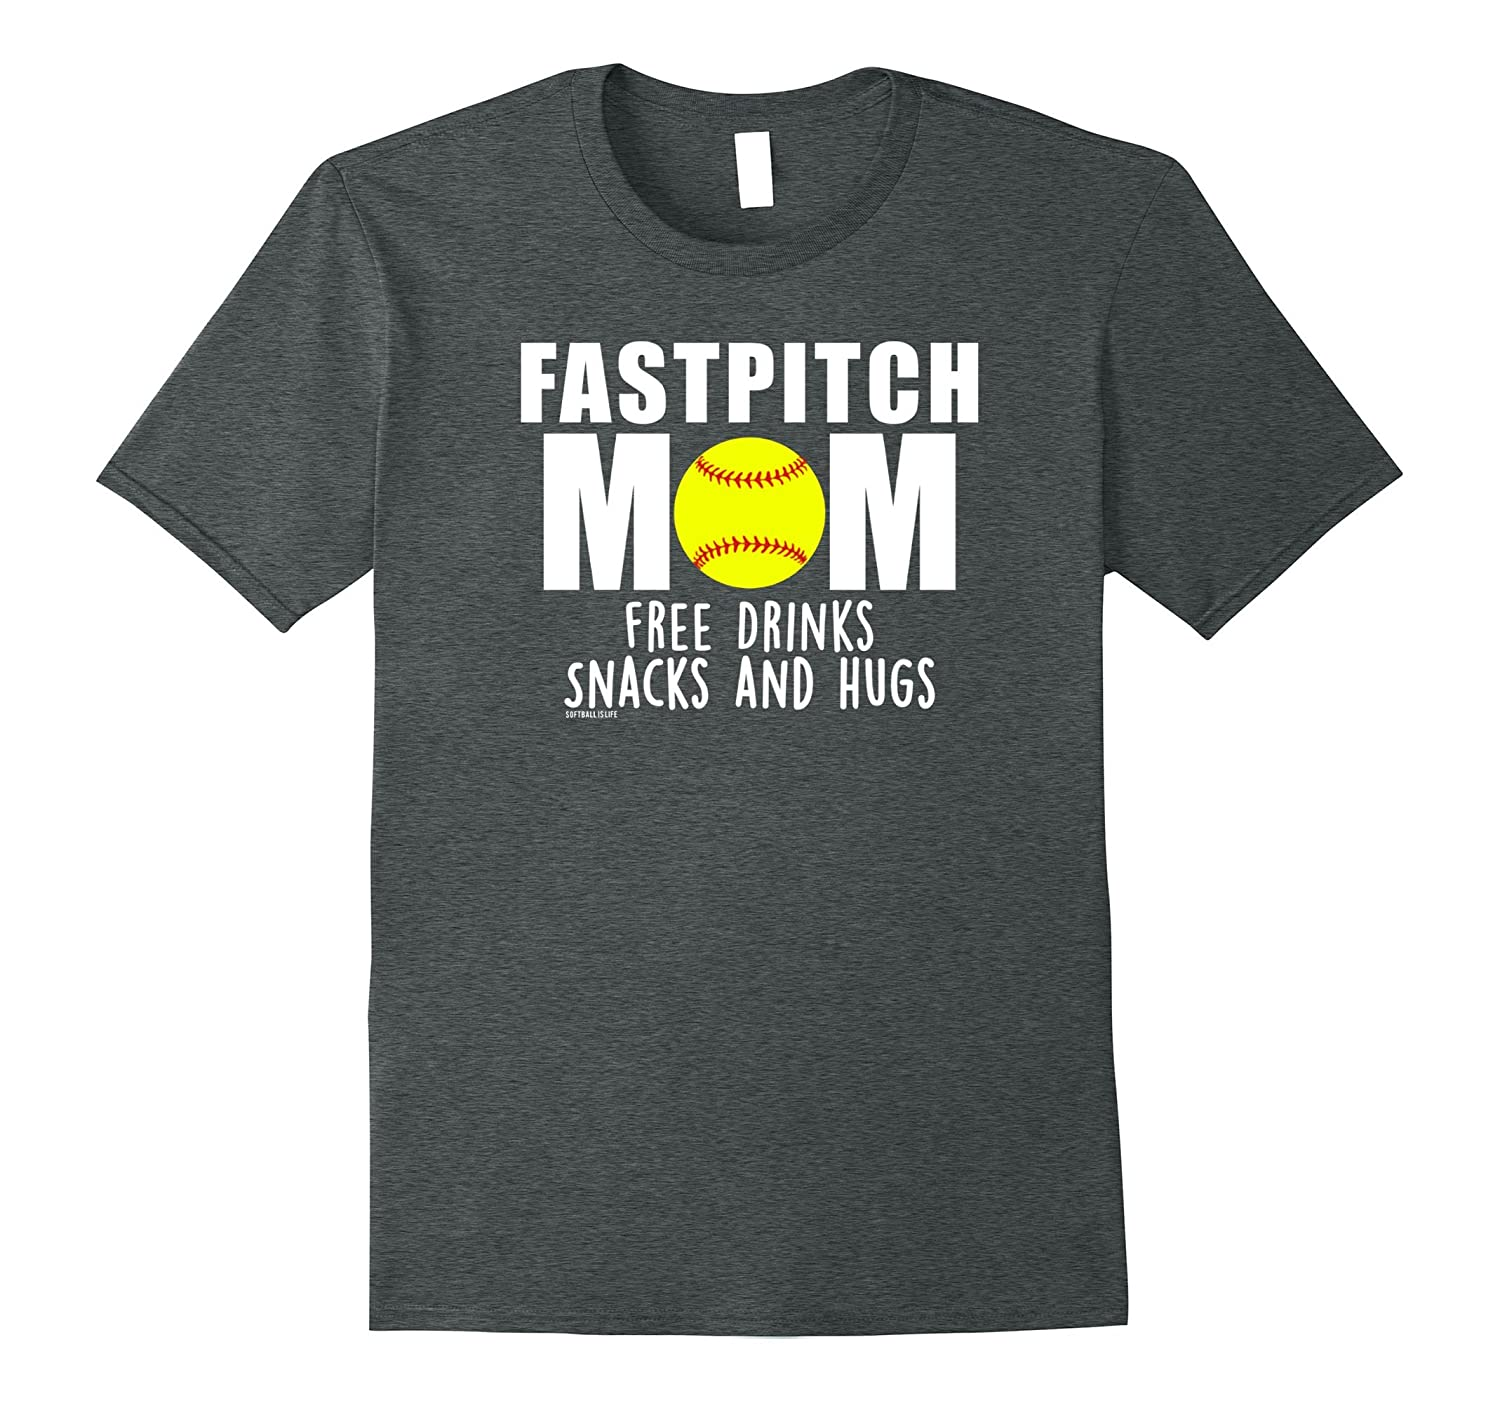 Fastpitch Mom Free Drinks Snacks And Hugs Softball T Shirt